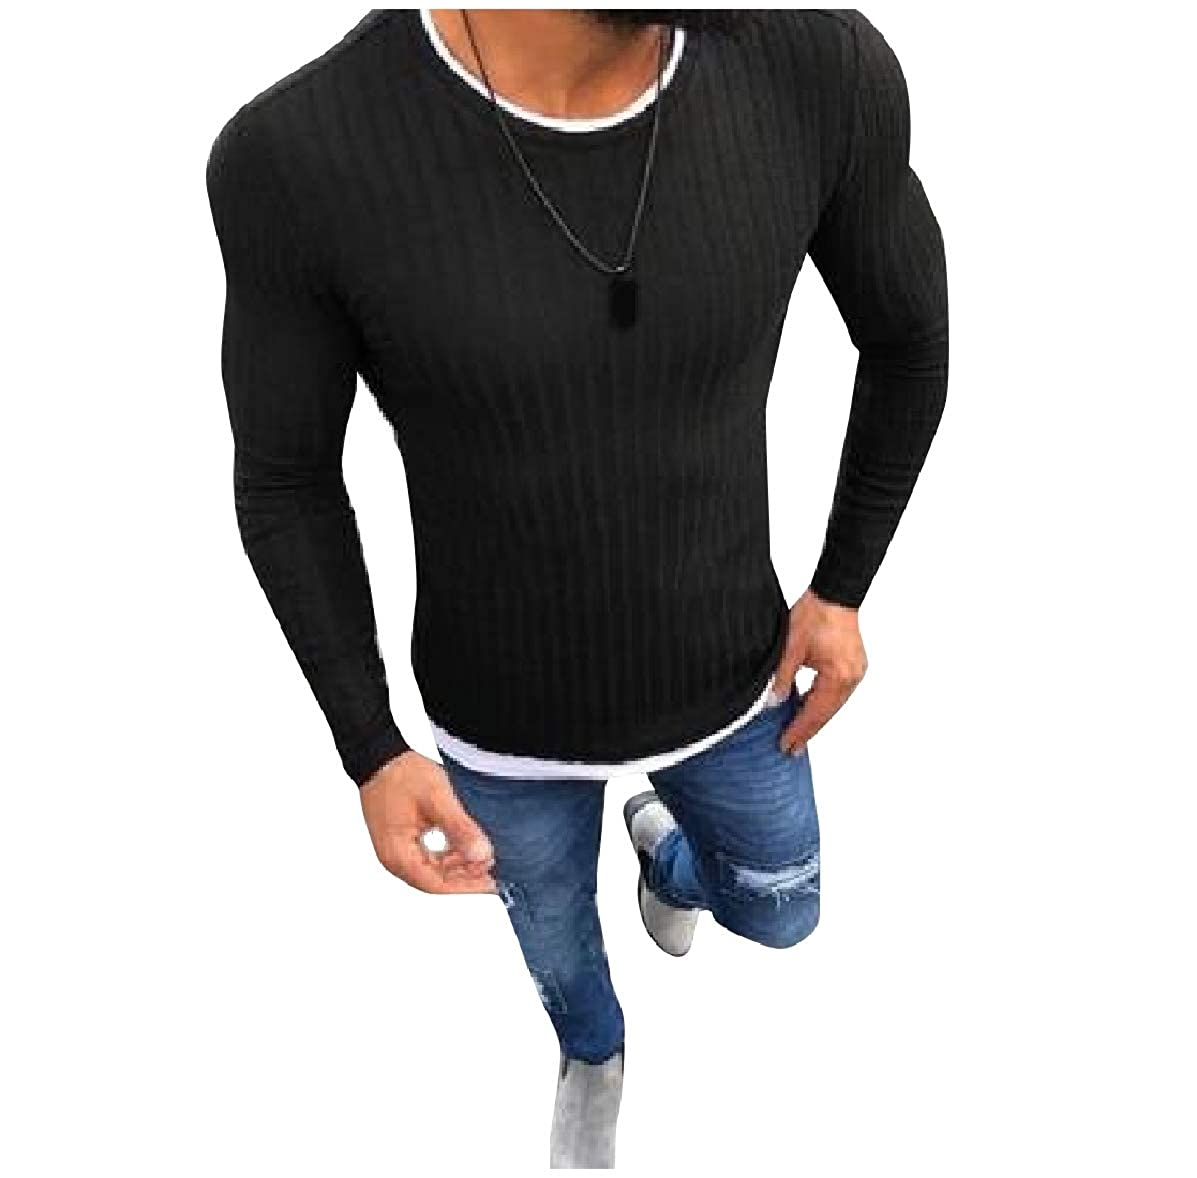 YUNY Mens Thermal Casual Leisure Pullover Knitwear Crew Neck Sweaters Black XL